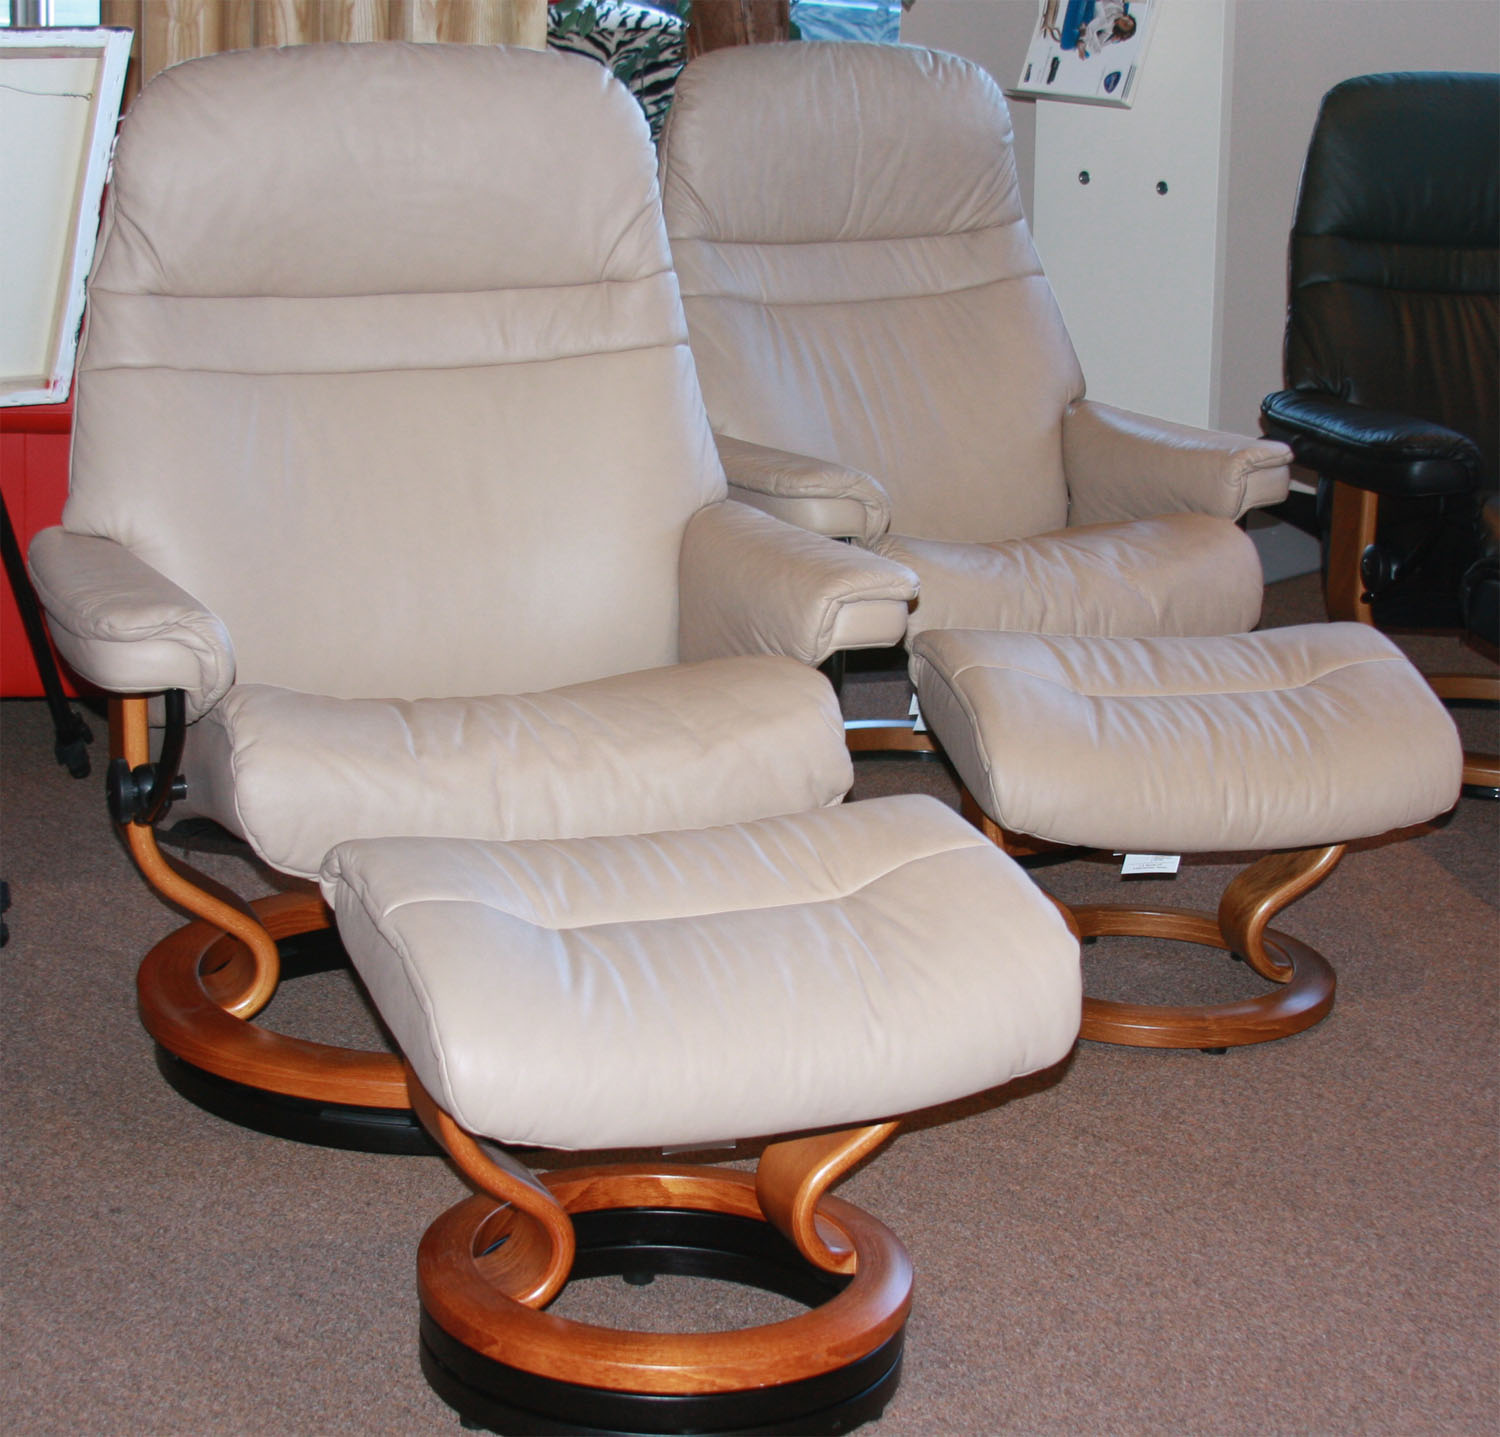 Stressless Sunrise Recliners Chairs By Ekornes Recliner